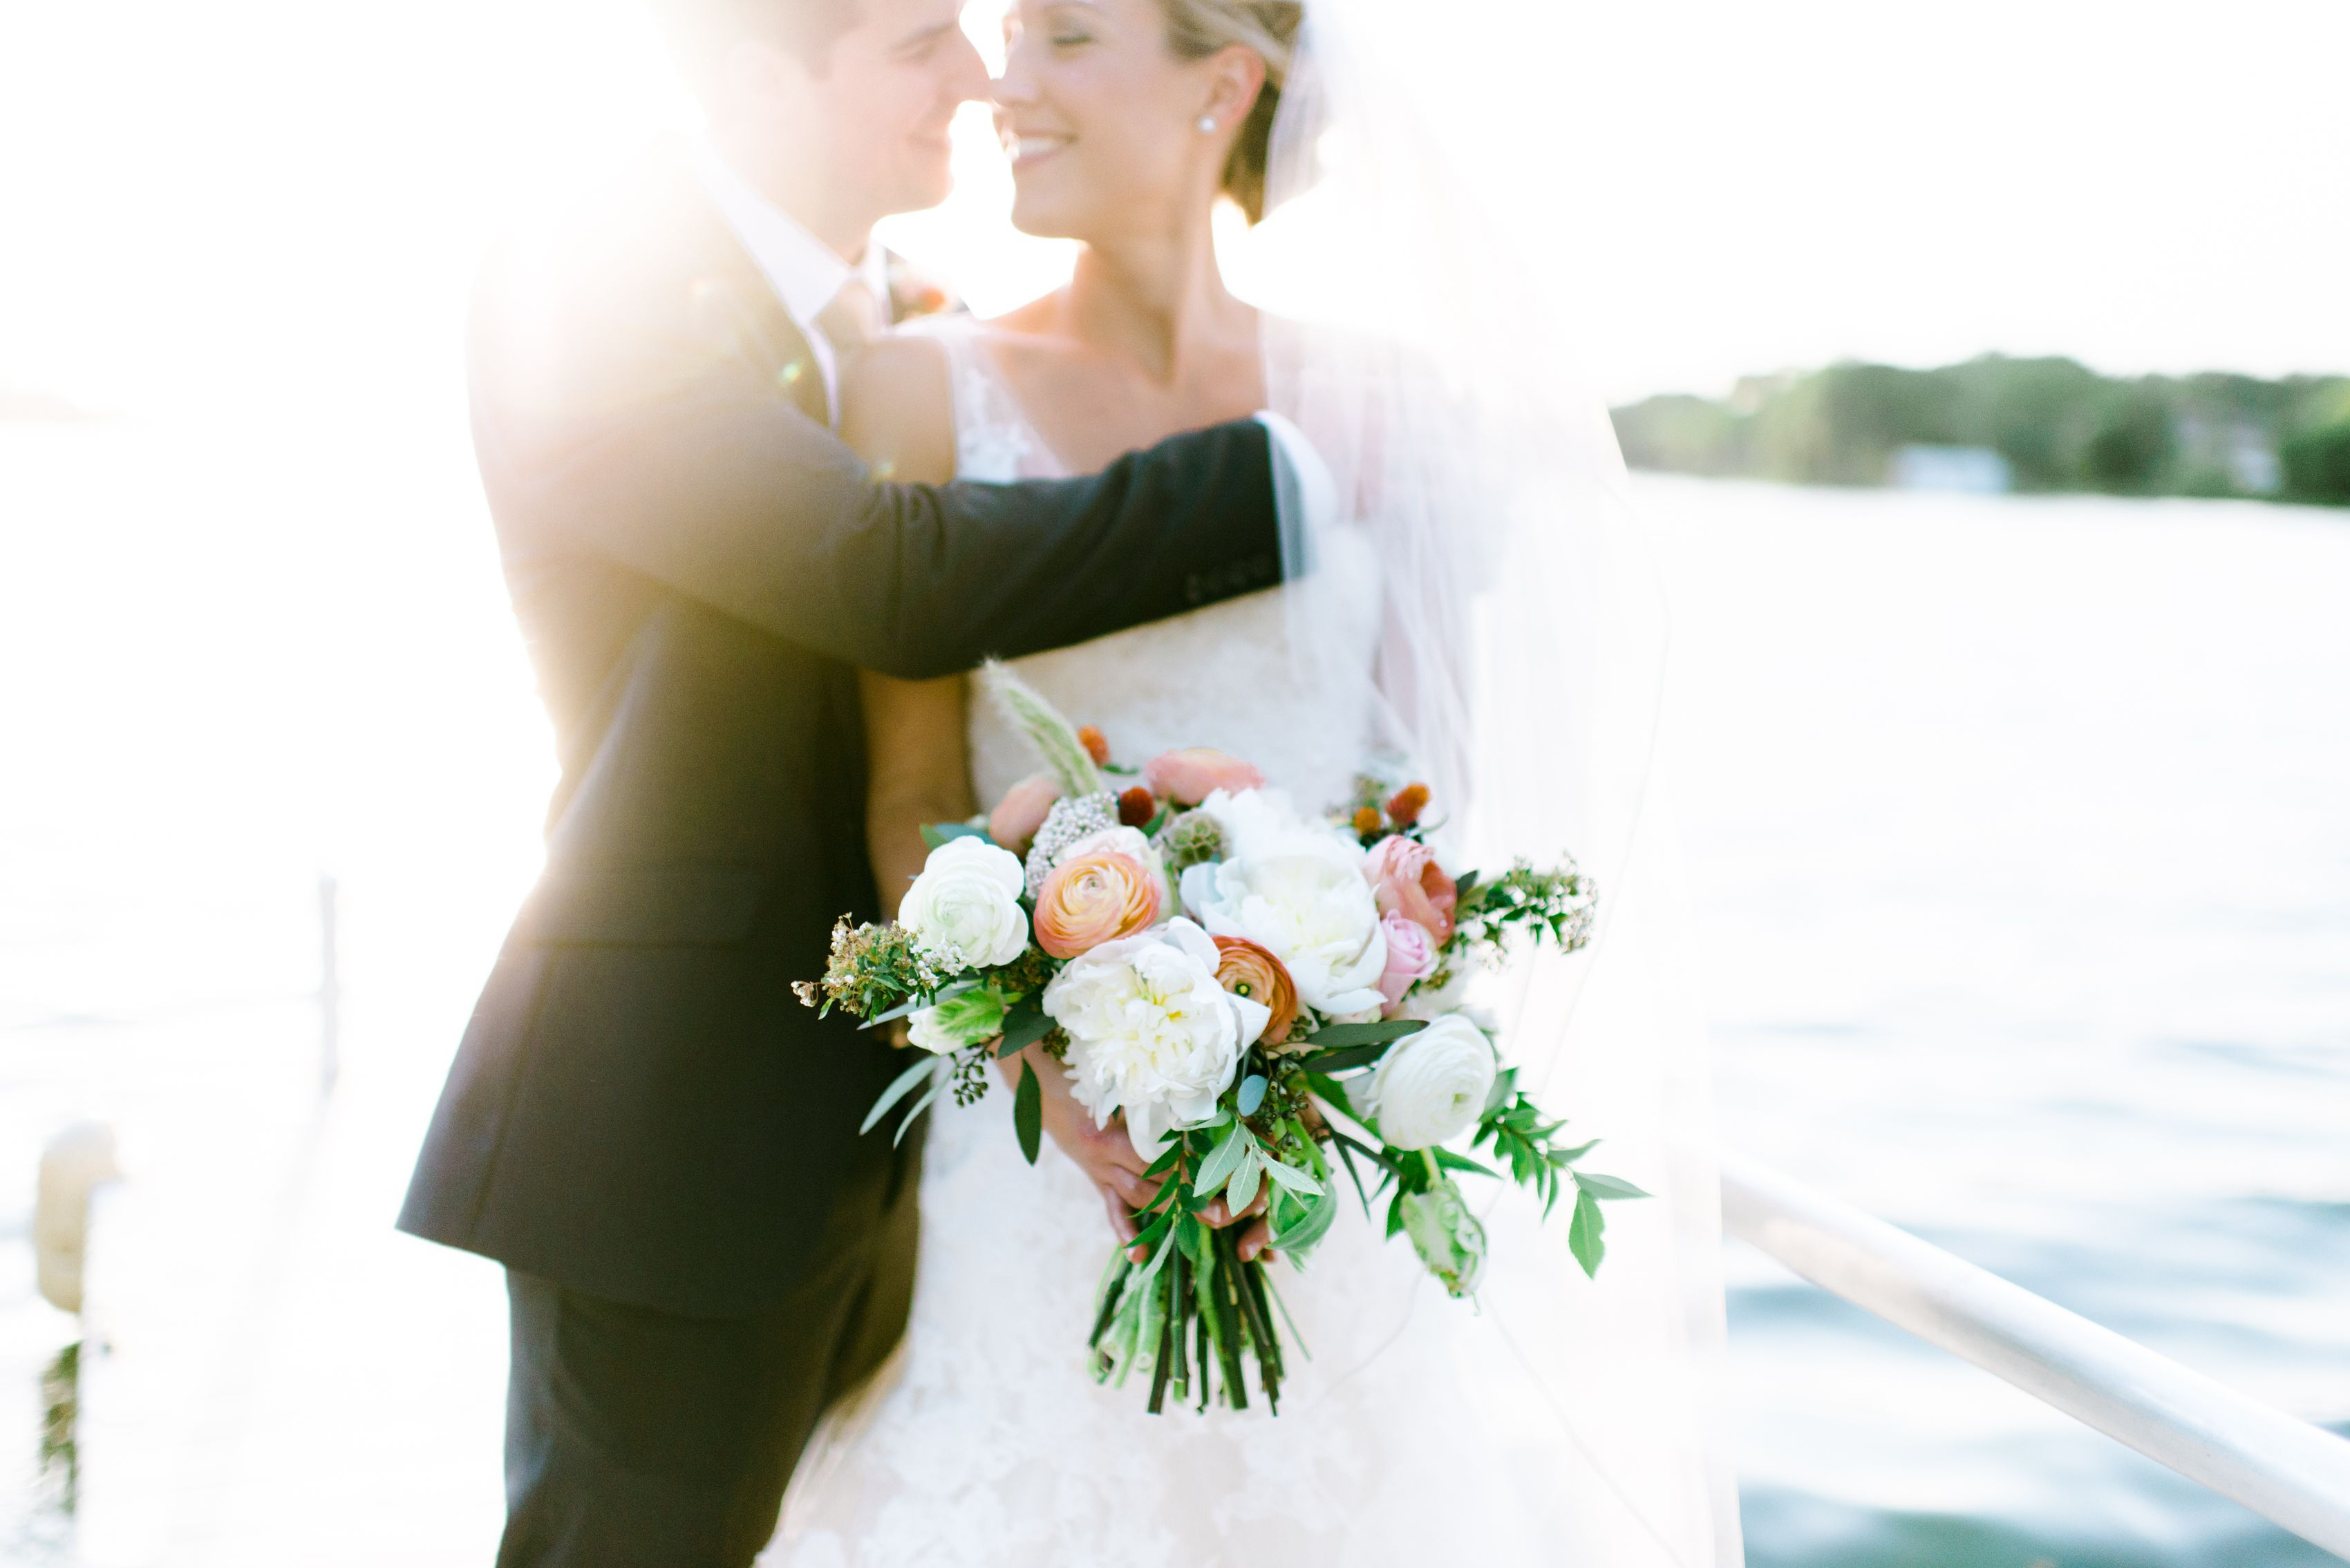 the bride and groom share a moment at their lakeside reception. she holds her loose bridal bouquet of white peony, peach roses, white ranunculus, rosita vendela roses, white majolik spray roses, bunny tail grass, pink rice flower, peach ranunculus, scabiosa pods, white spirea, white parrot tulips, elm & seeded eucalyptus